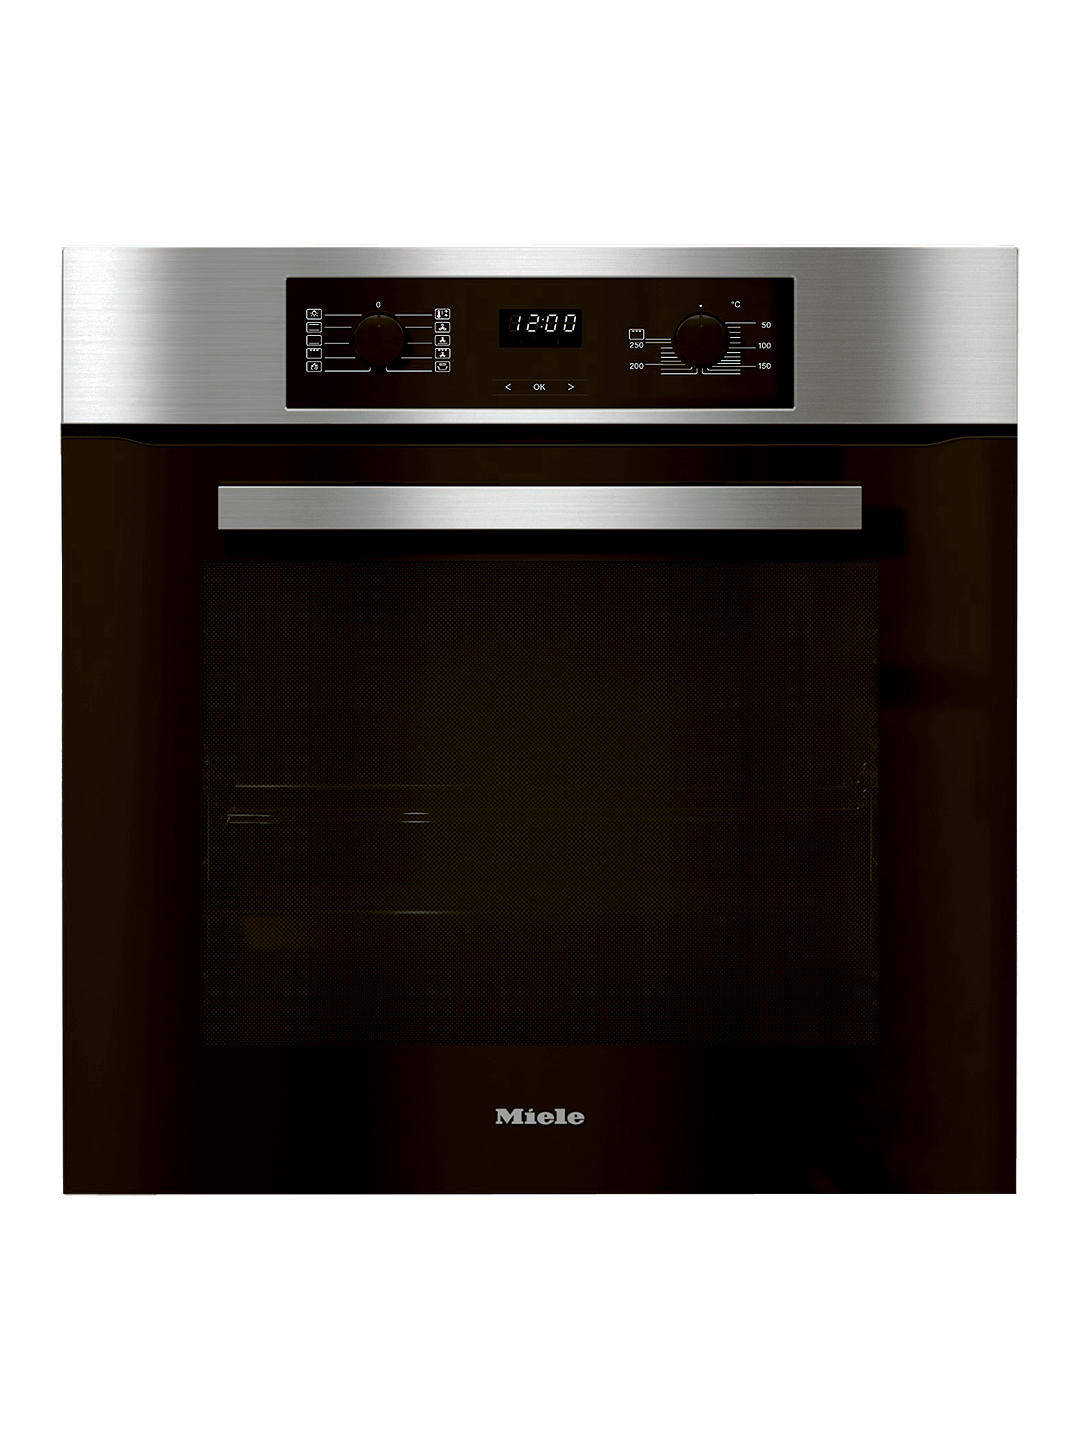 miele pyrolytic oven instructions